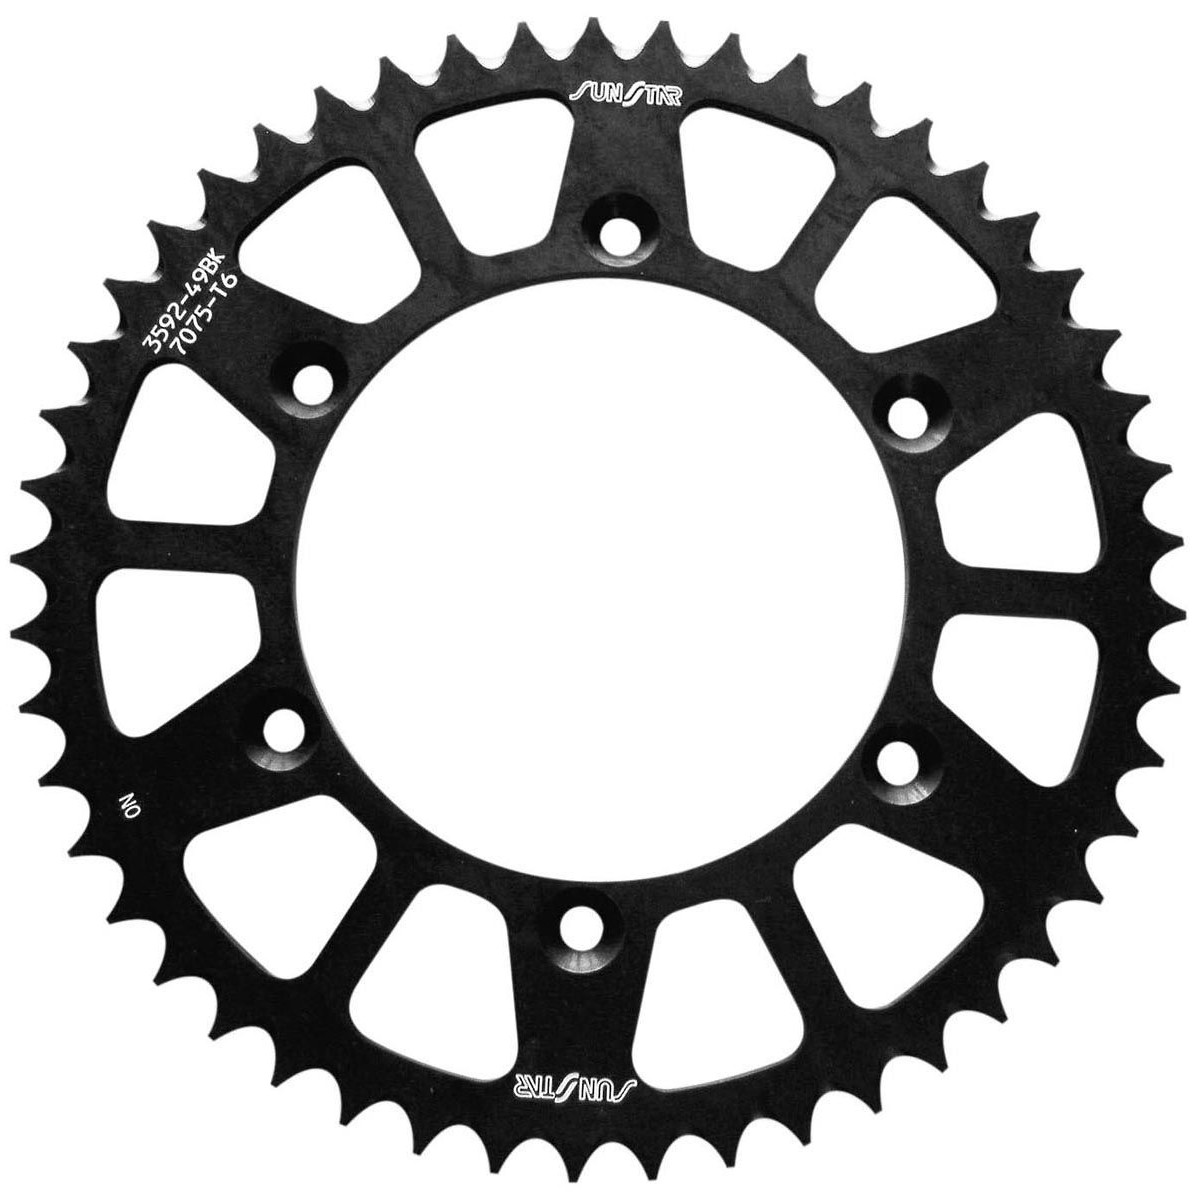 Sunstar 520 Works Triplestar Aluminum Rear Sprocket - Reviews, Comparisons, Specs - Motocross ...